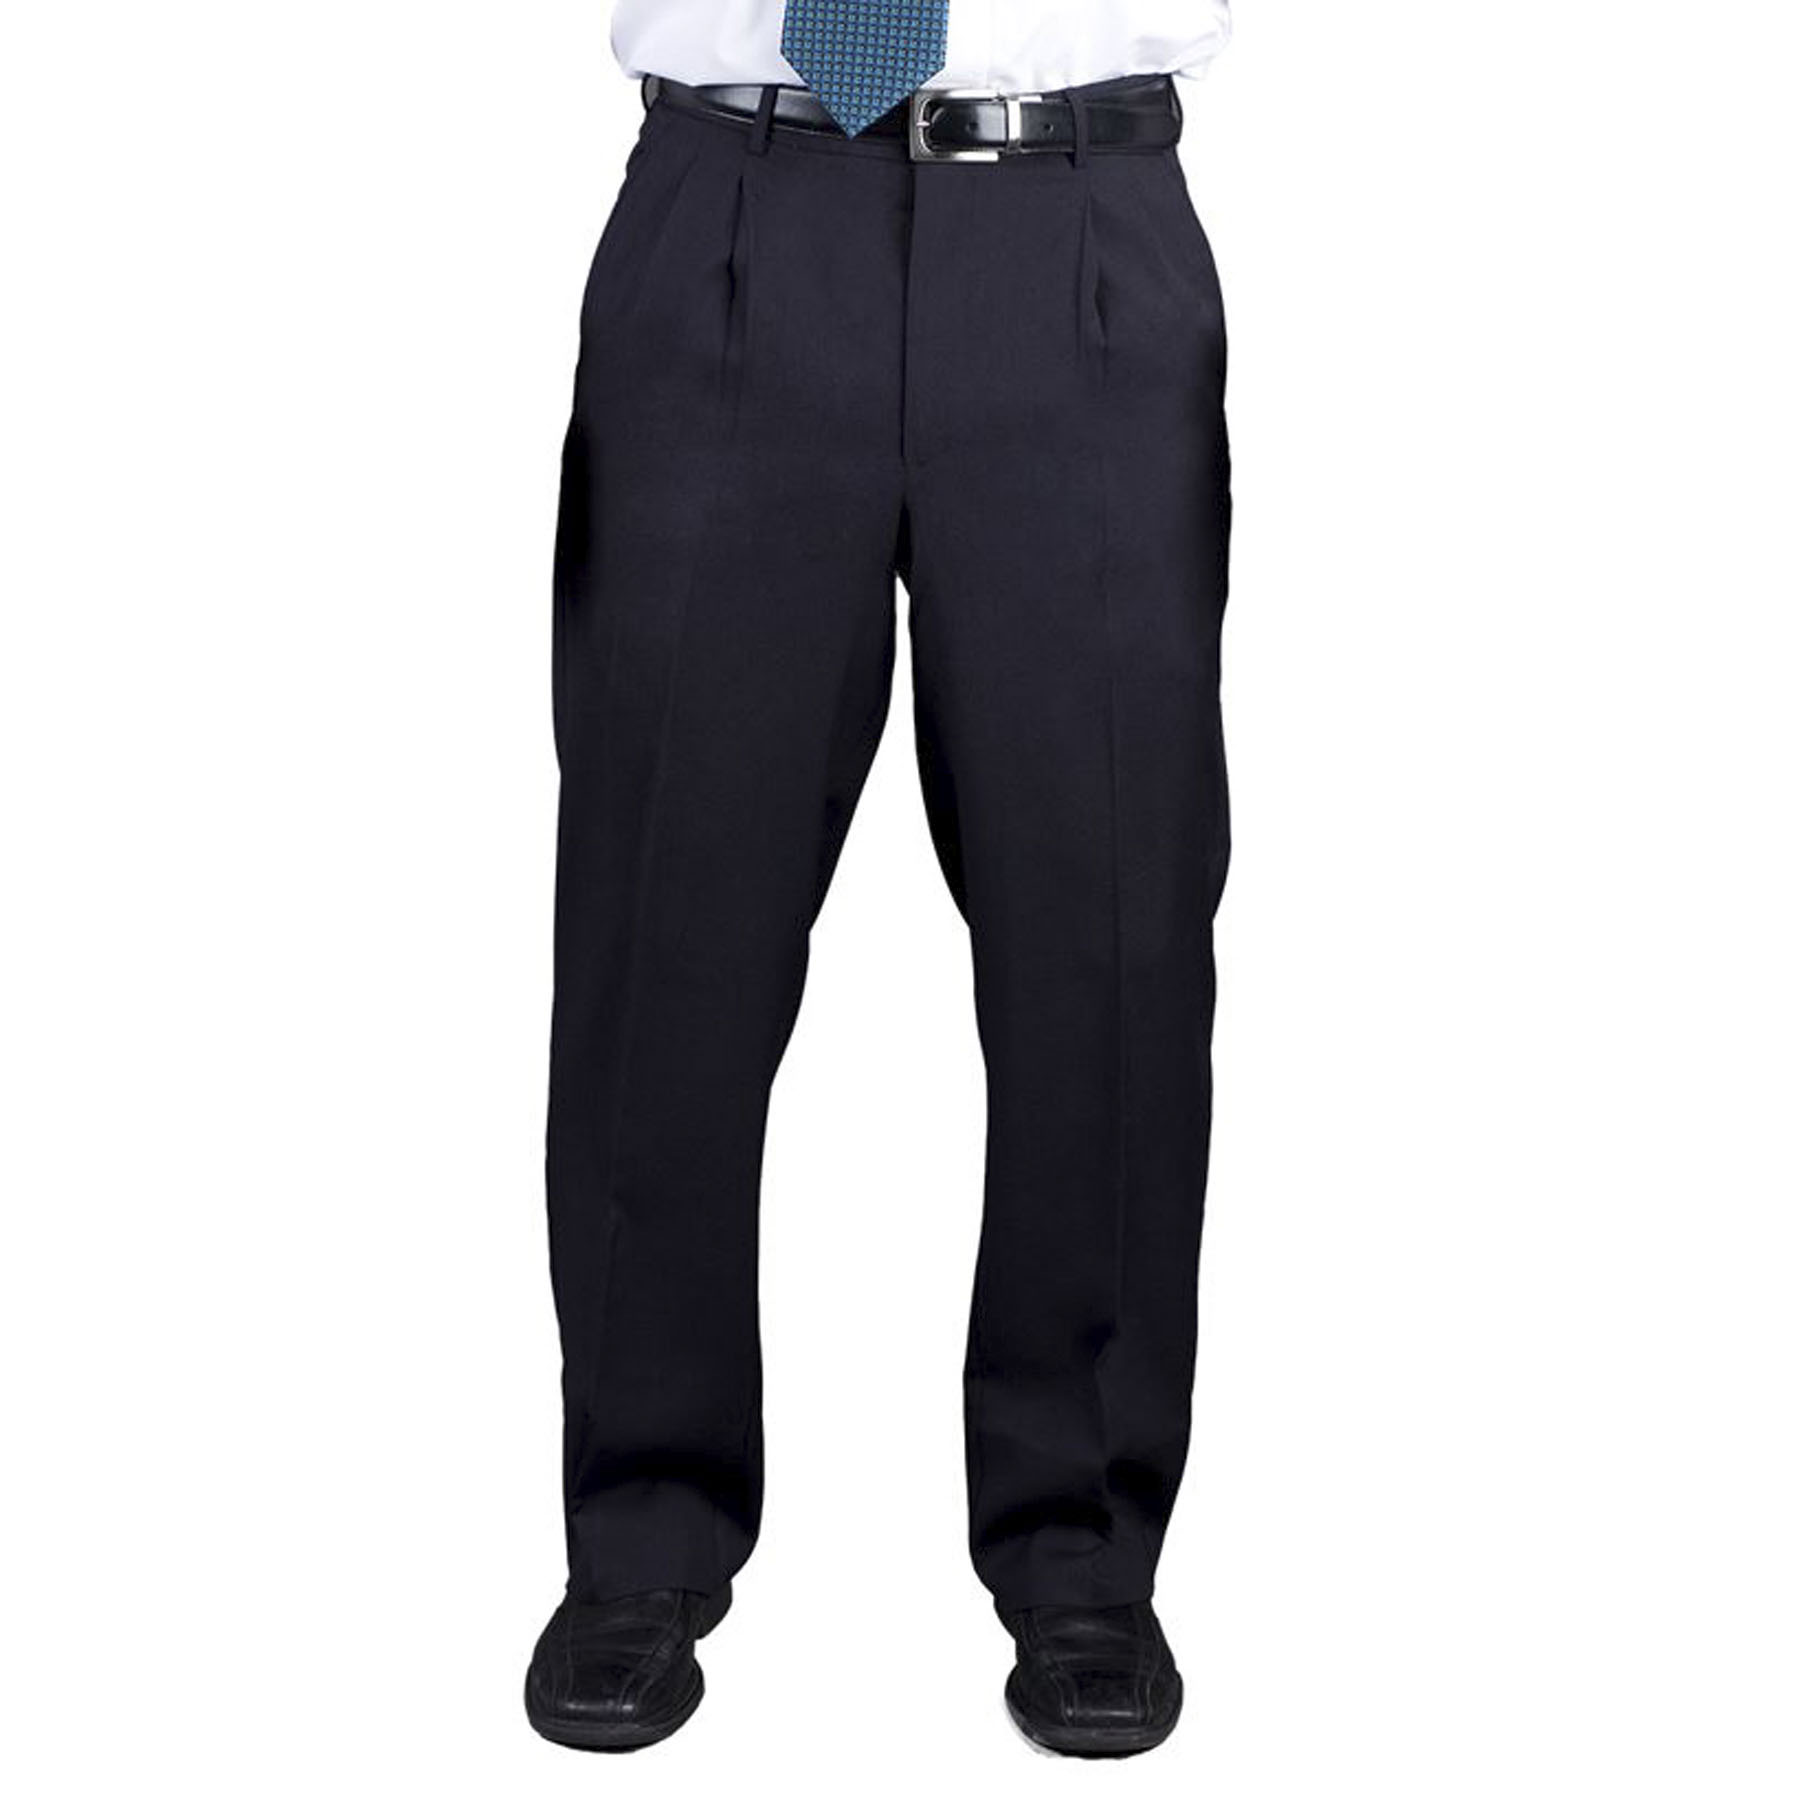 Executive Apparel Polywool Blend Pleated Front Pants